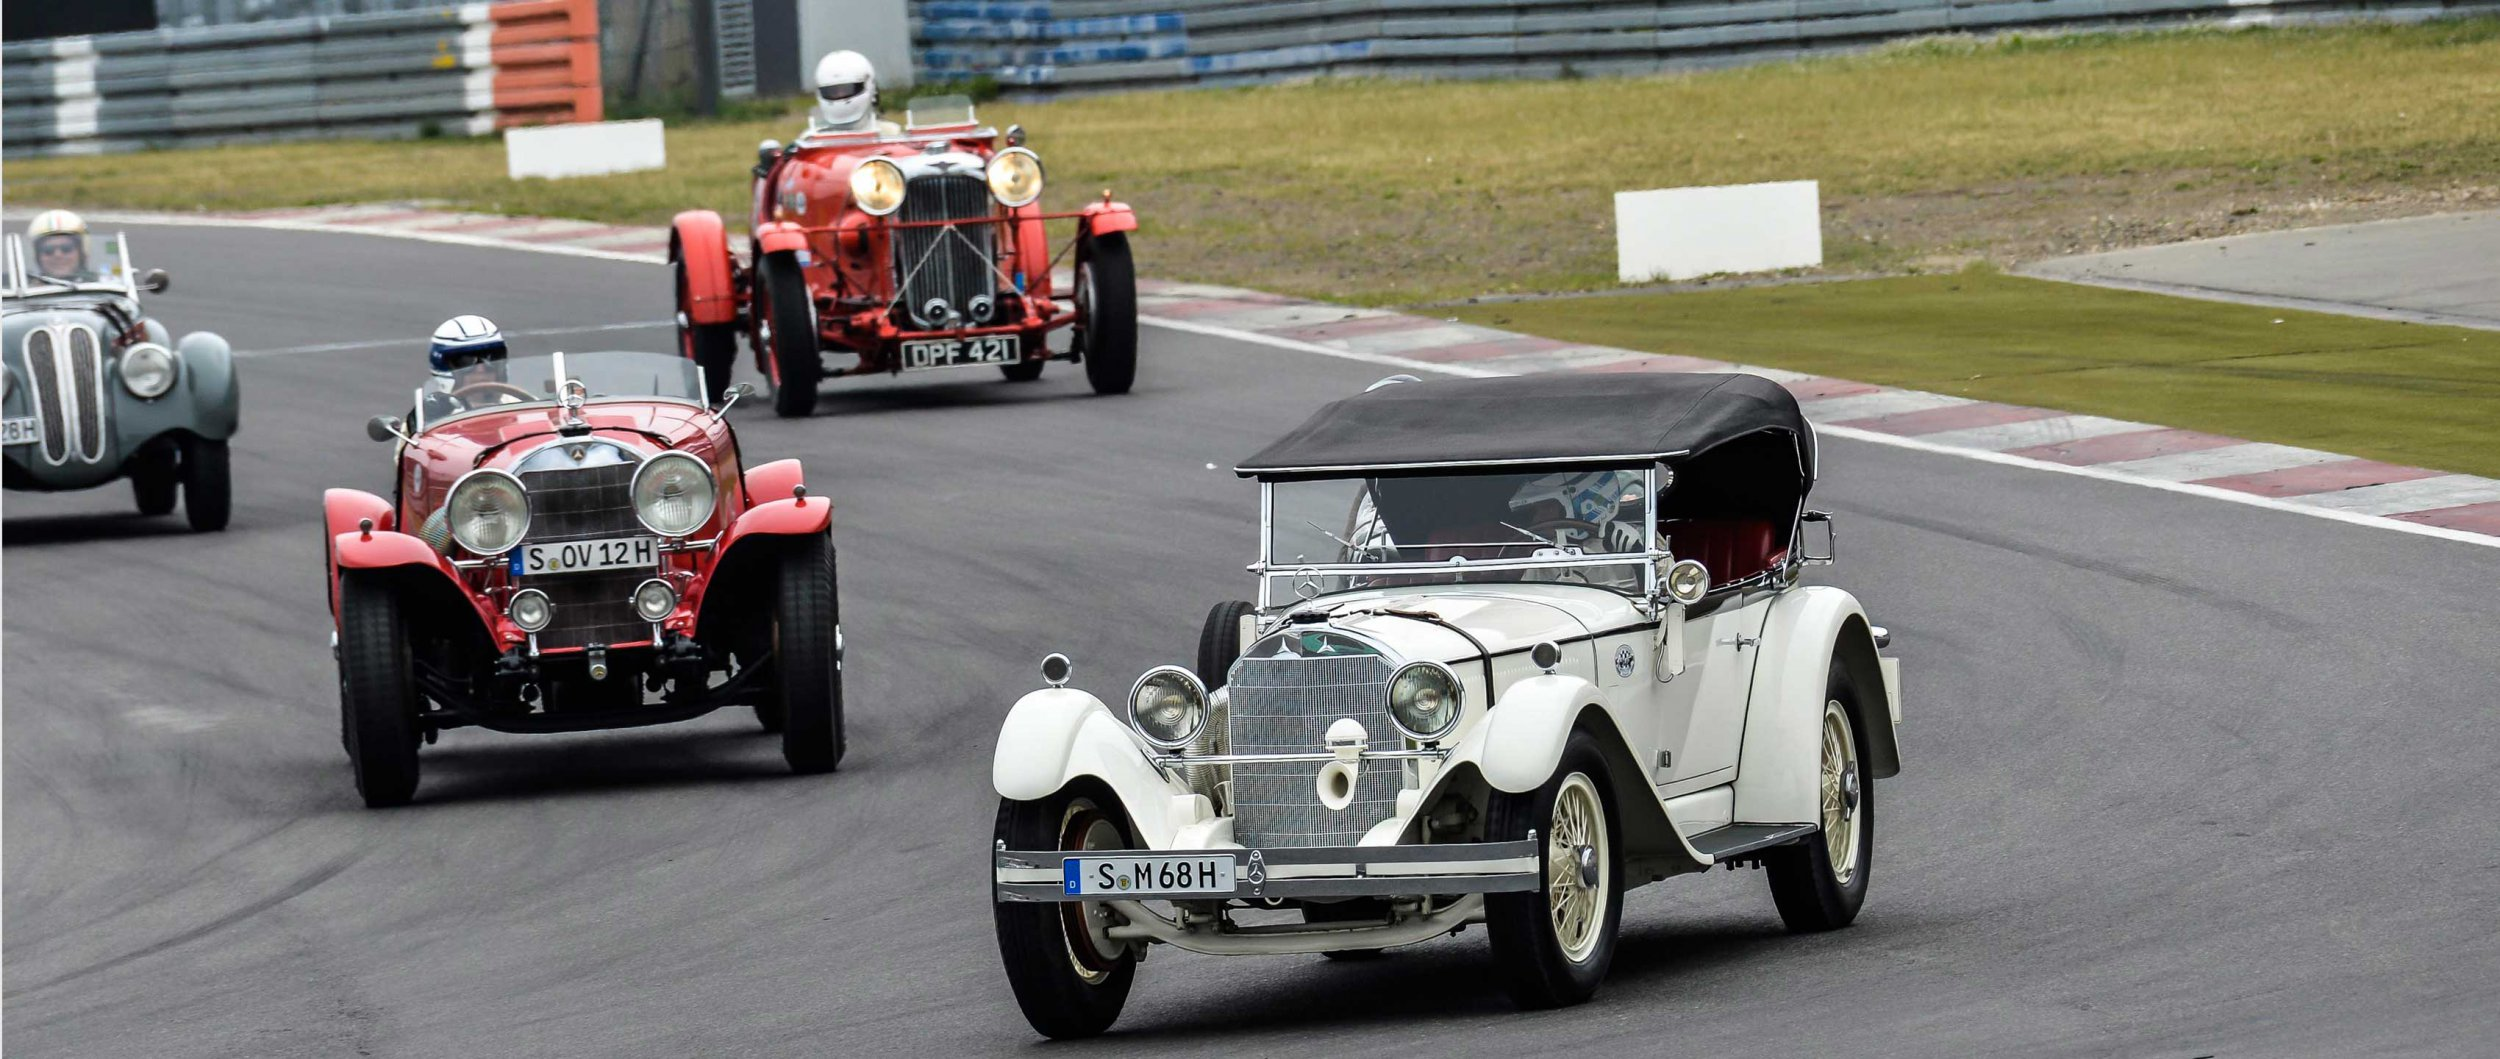 https://cdn1-cloud.mb-lounge.com/files/HQ-Events/Classic/Oldtimer%20Events/mbcom_nuerburgring17_review_1_3400x1440.jpg